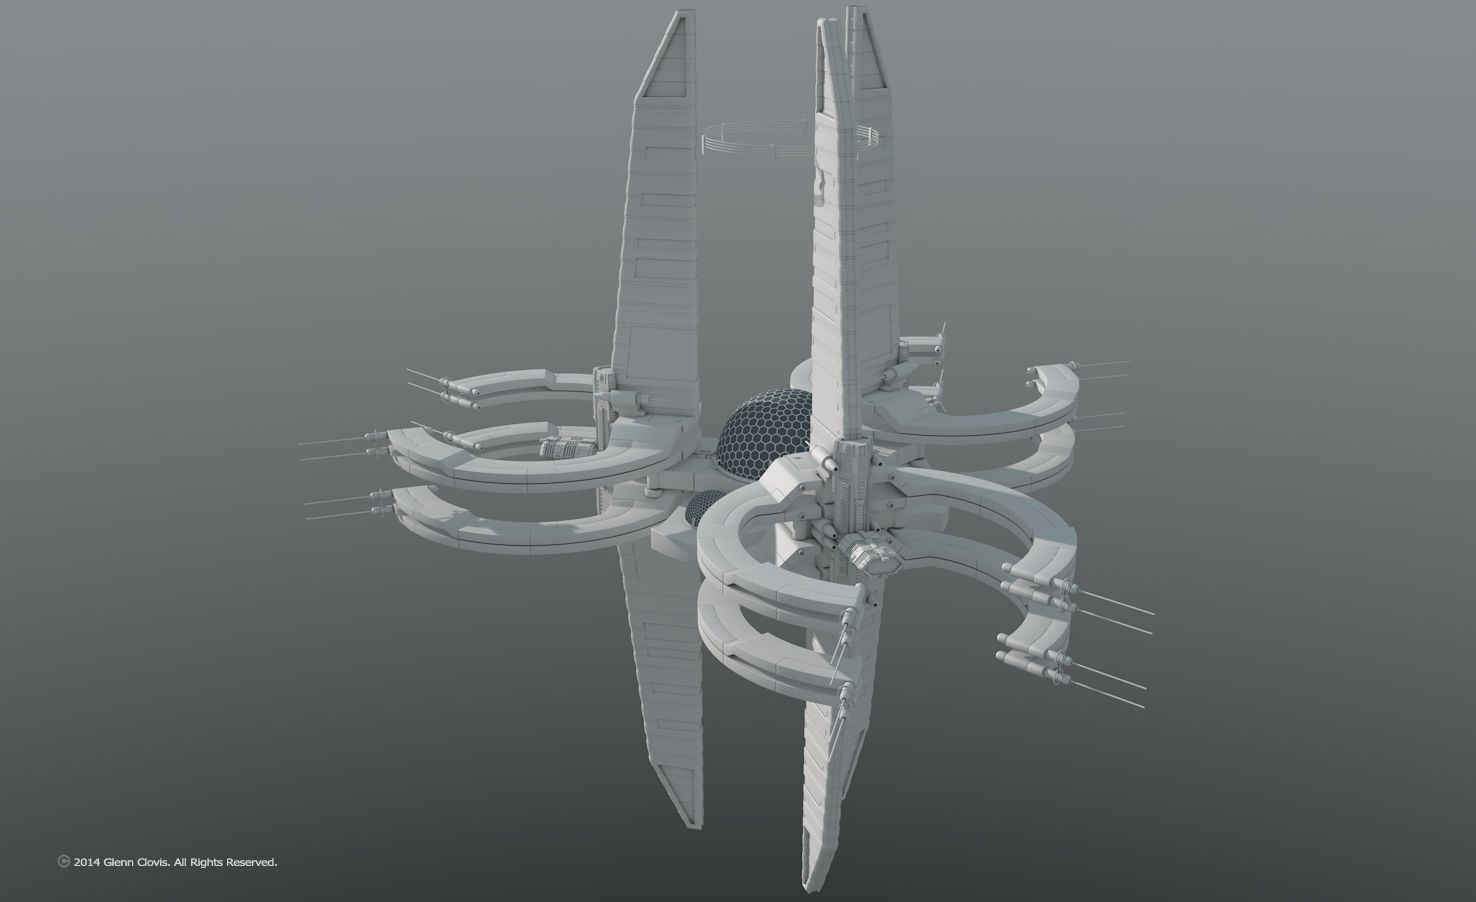 Space station concepts quick designs by glennclovis for Space concept